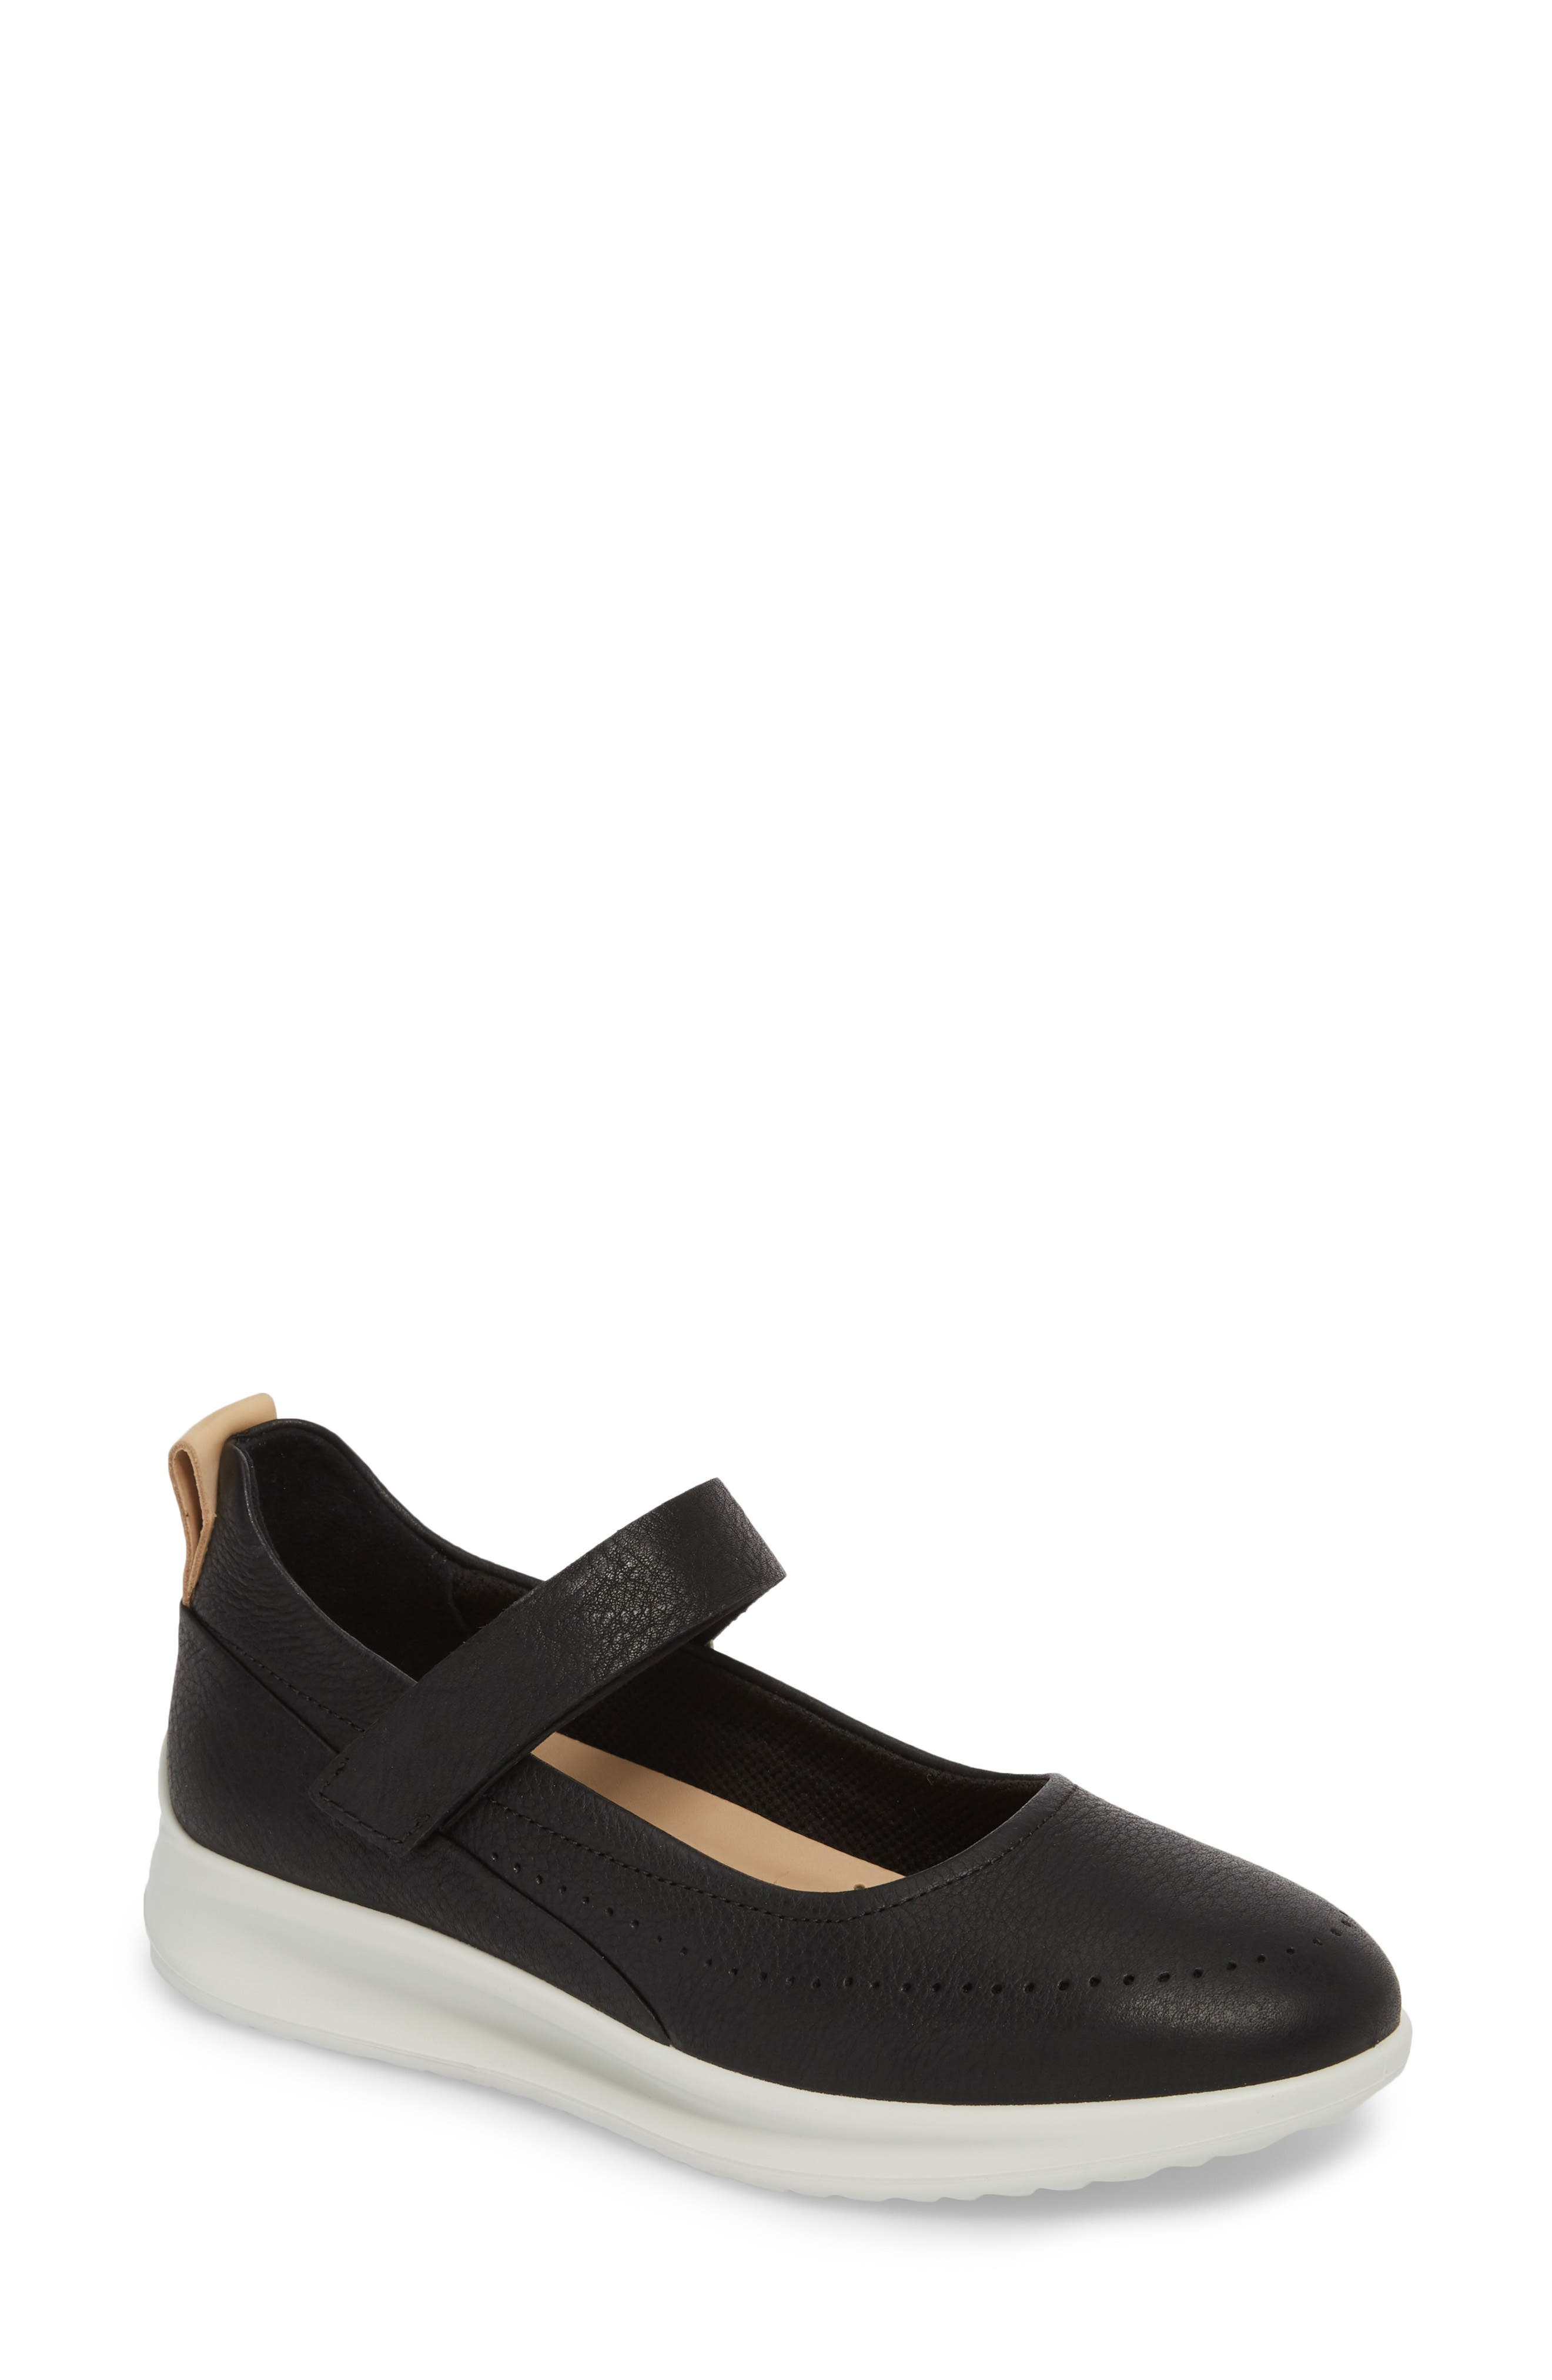 Aquet Mary Jane Wedge Sneaker,                             Main thumbnail 1, color,                             Black Leather